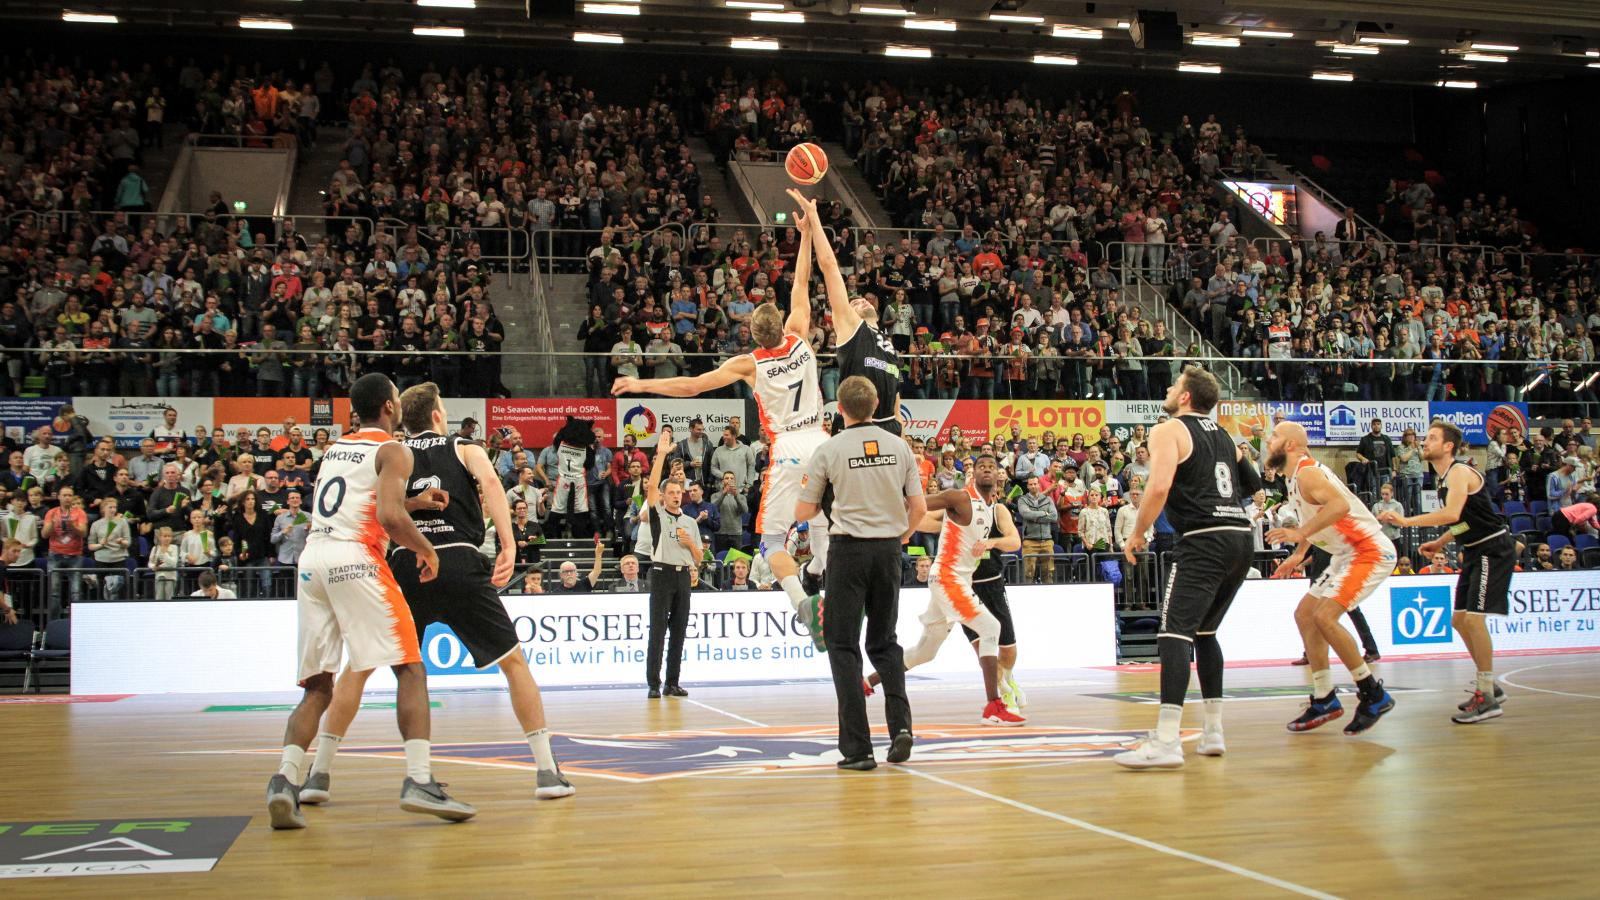 Basketball-Verein Rostock Seawolves